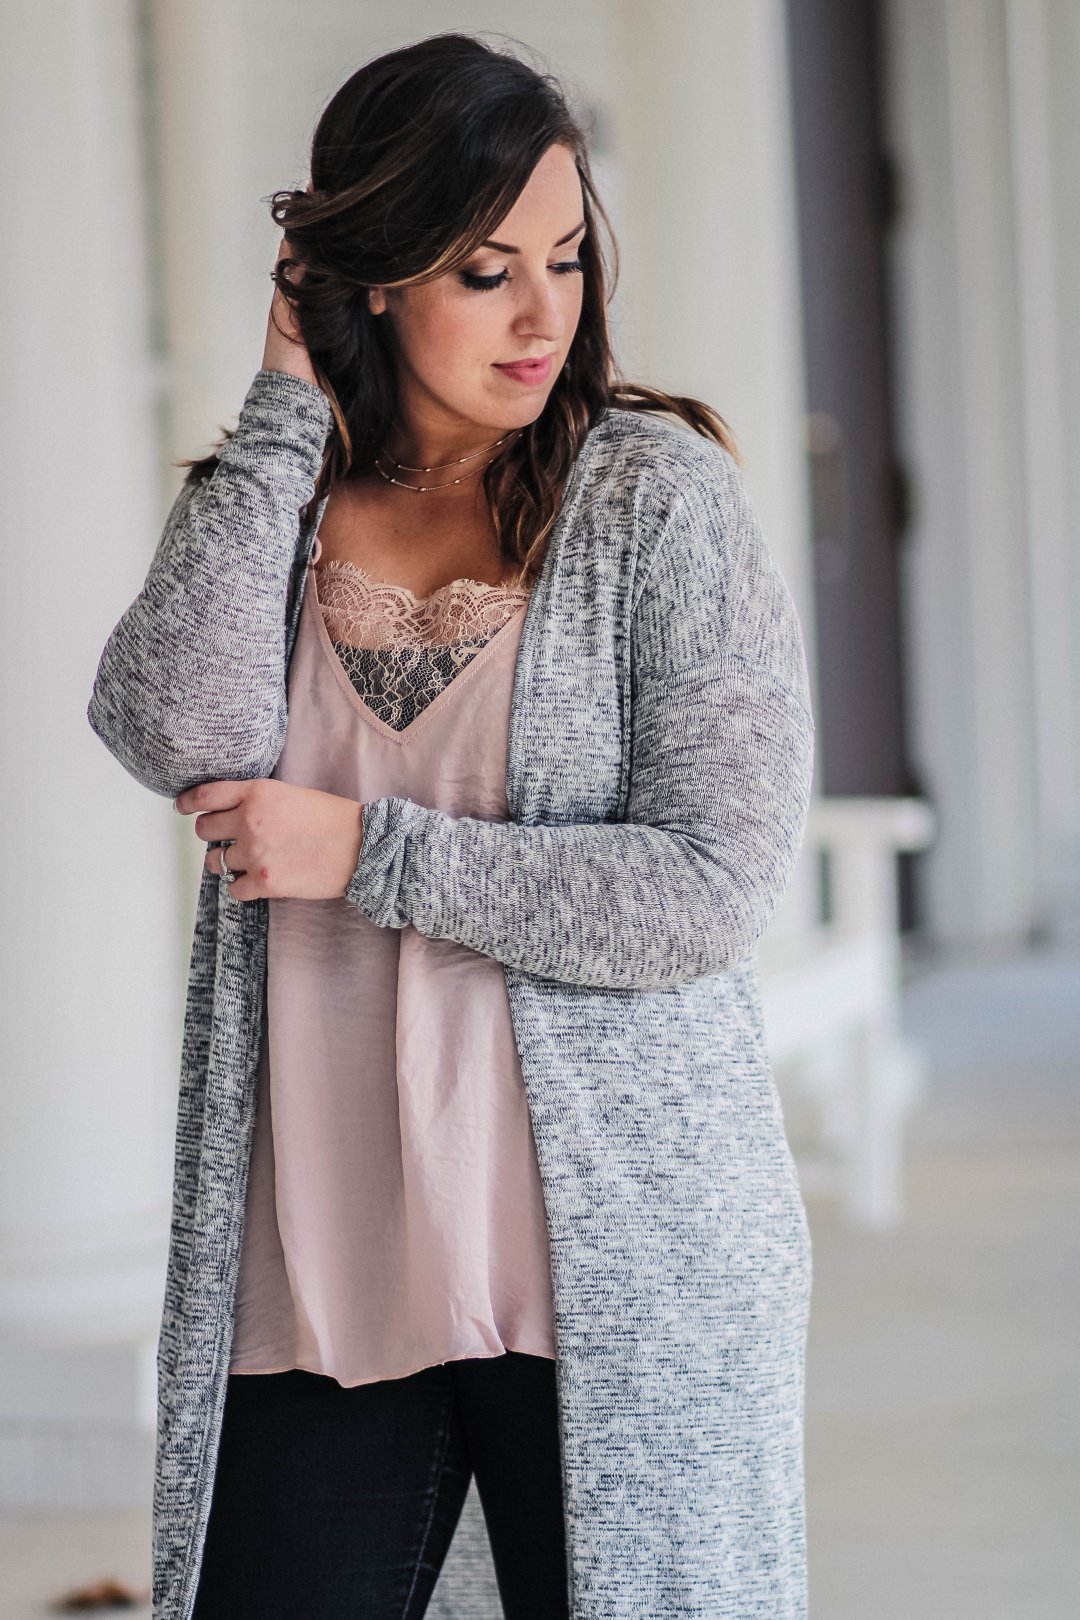 Duster Sweater Outfit | Just Peachy Blog